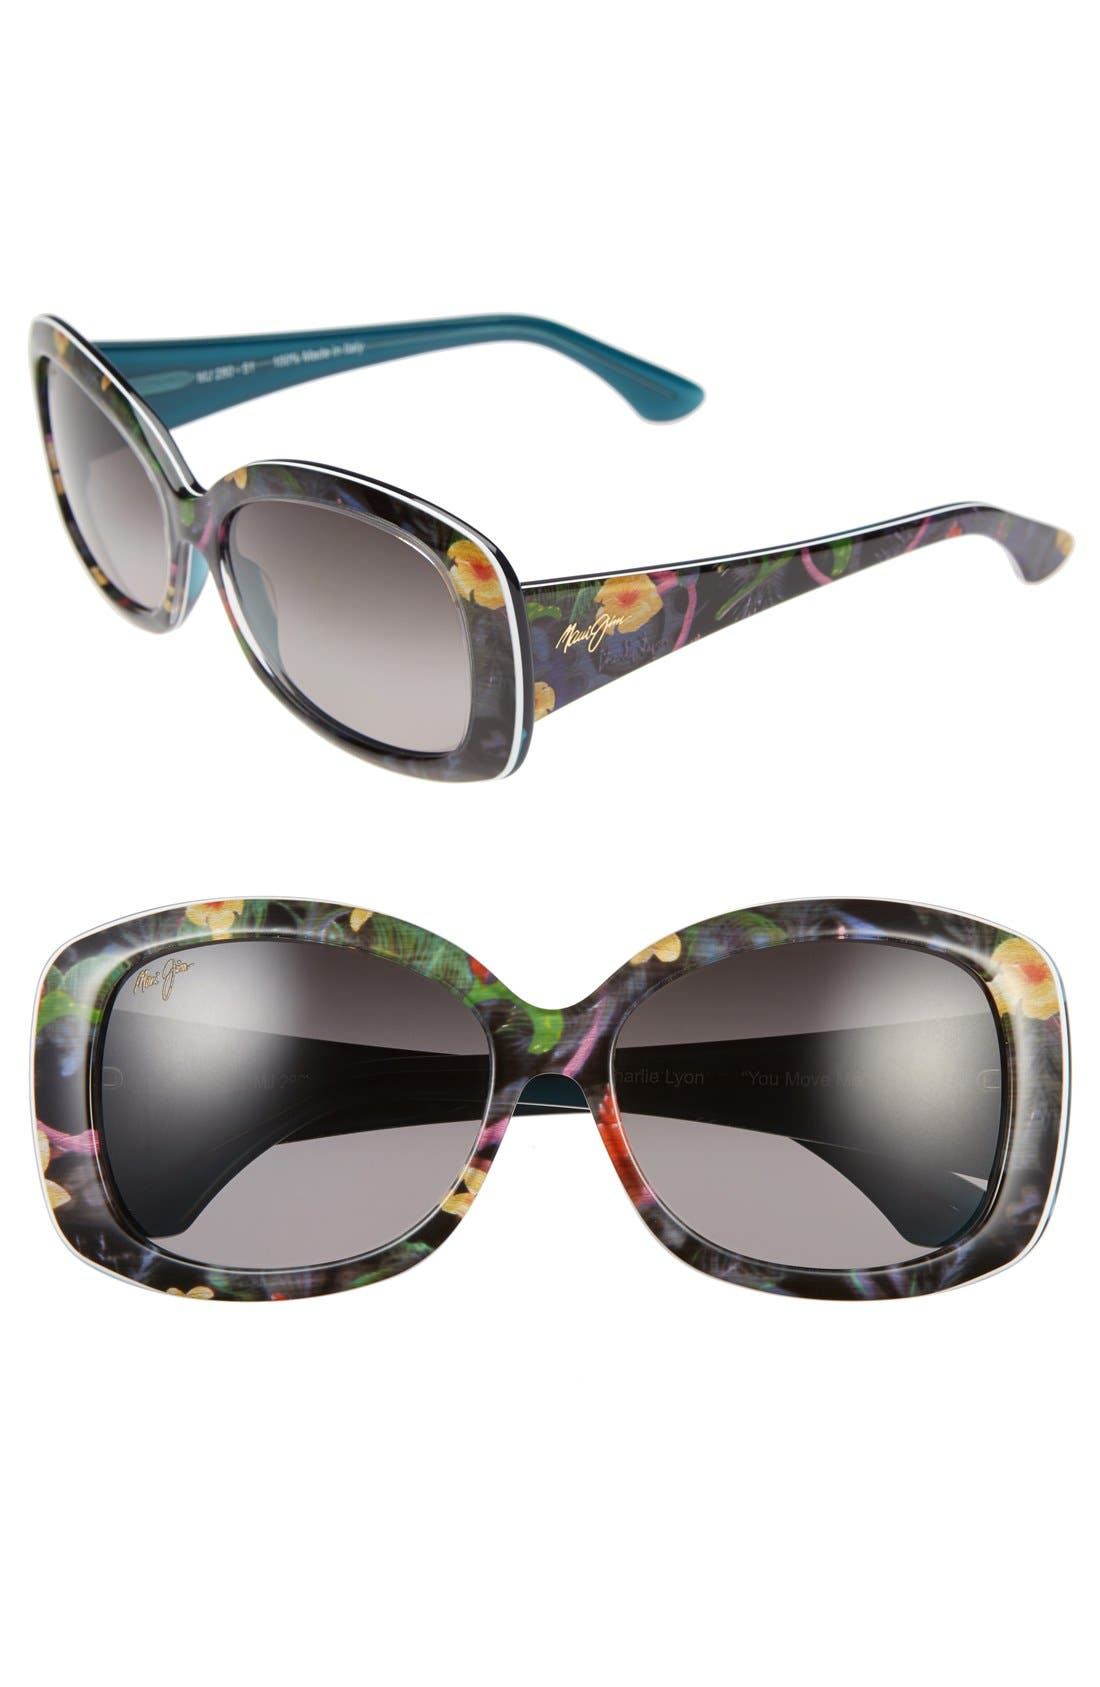 You Move Me 60mm PolarizedPlus2<sup>®</sup> Sunglasses,                             Main thumbnail 1, color,                             Silk/ White/ Teal